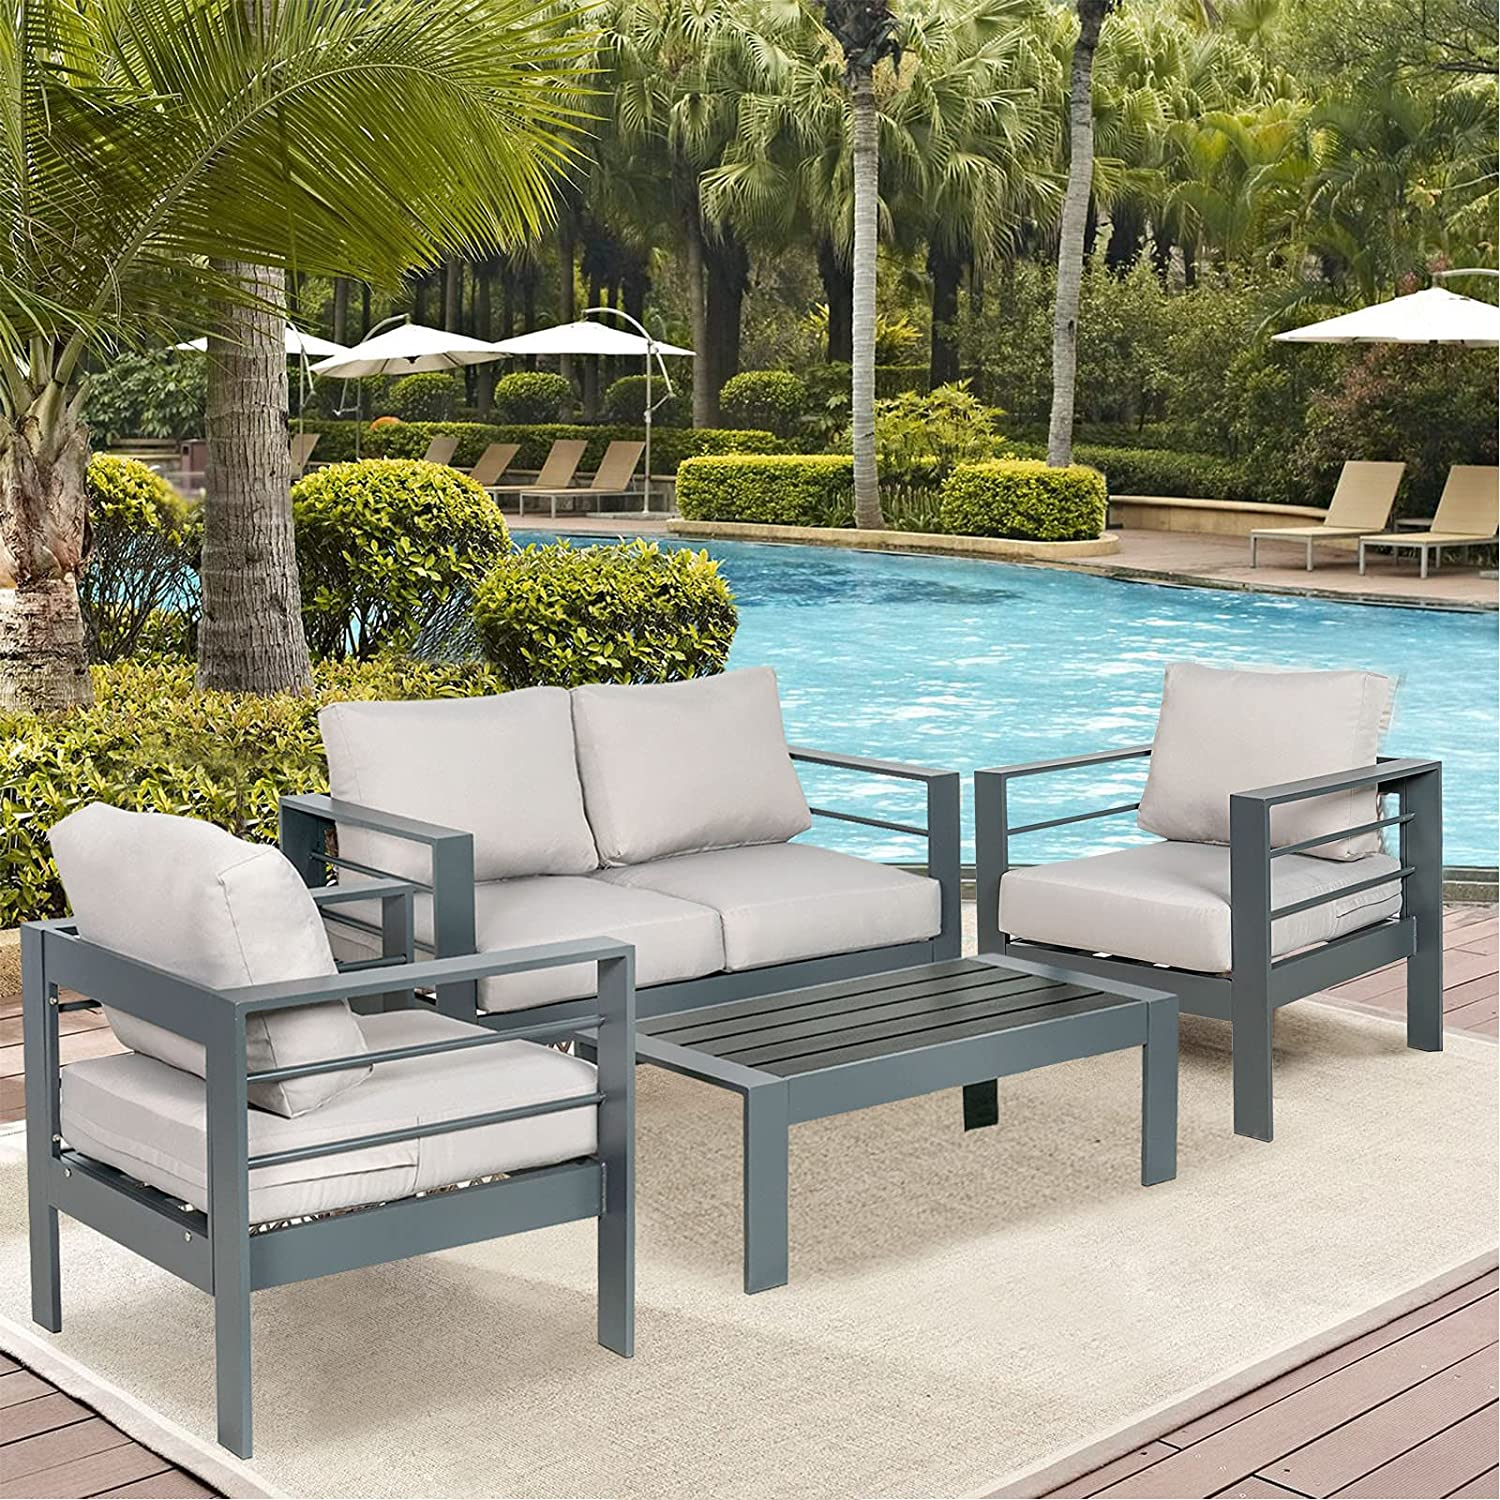 MORCOE Outdoor Patio 4 Piece Outdoor Patio Furniture Aluminum Conversation Sets, Outdoor Deep Seating Conversation Set, 1 Loveseat, 2 Armrest Sofa Chairs, 1 Coffee Table(Light Grey)